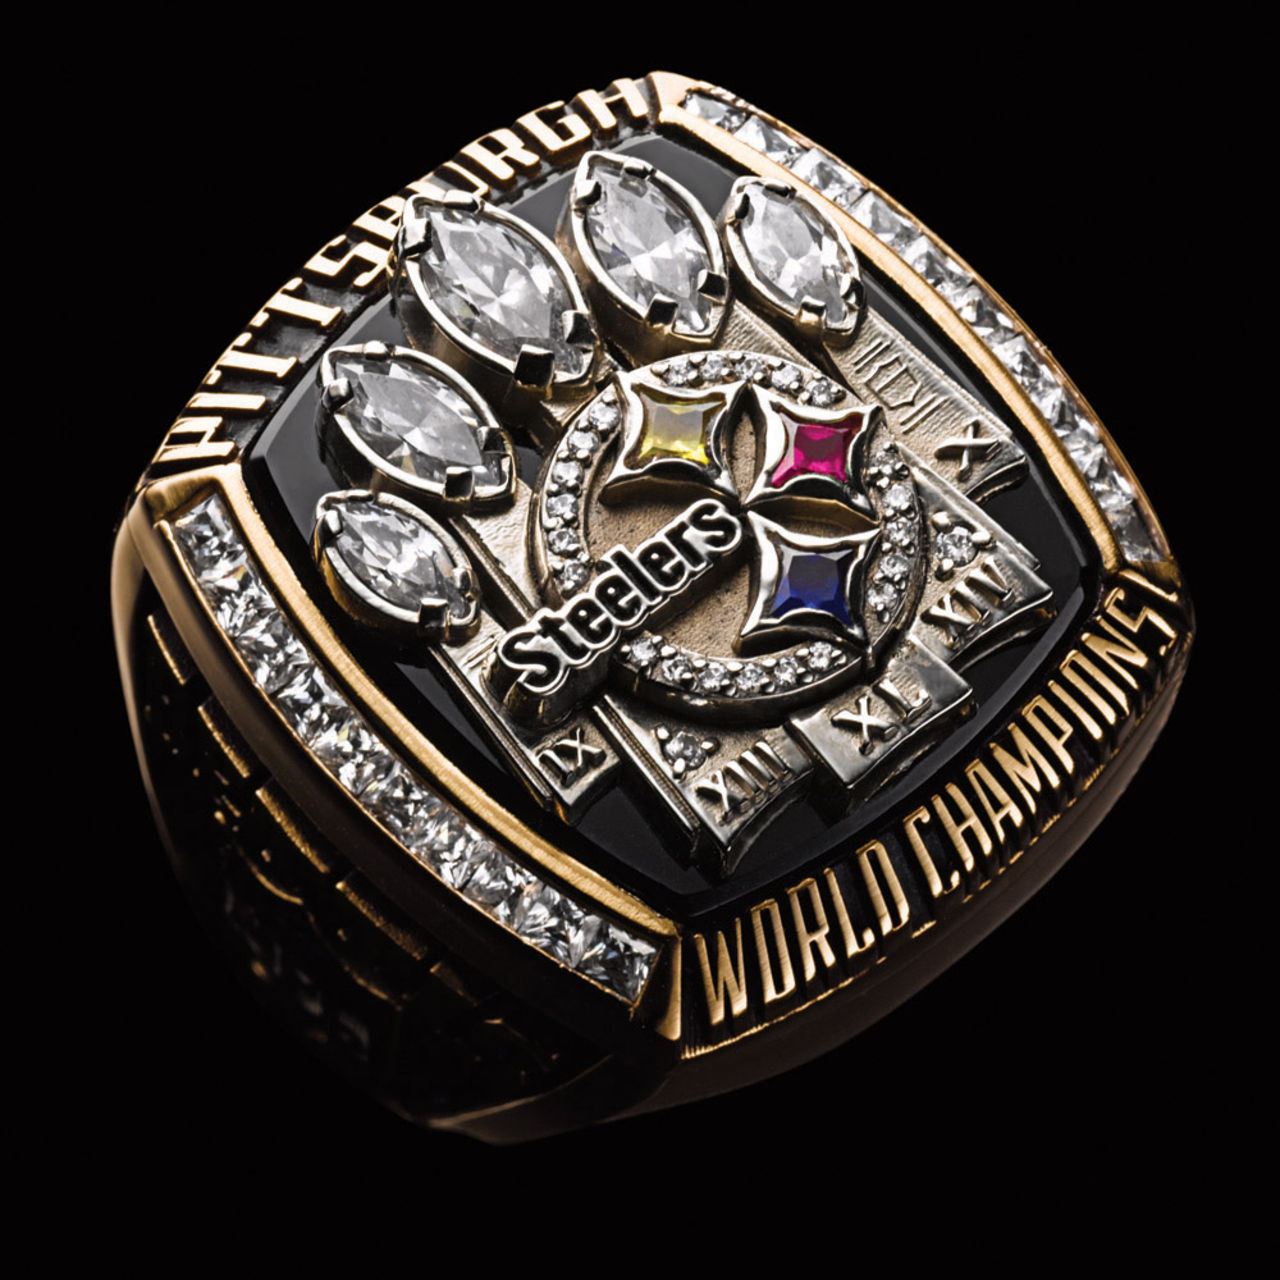 photos and of gallery com the essays nfl rings photo galleries featured